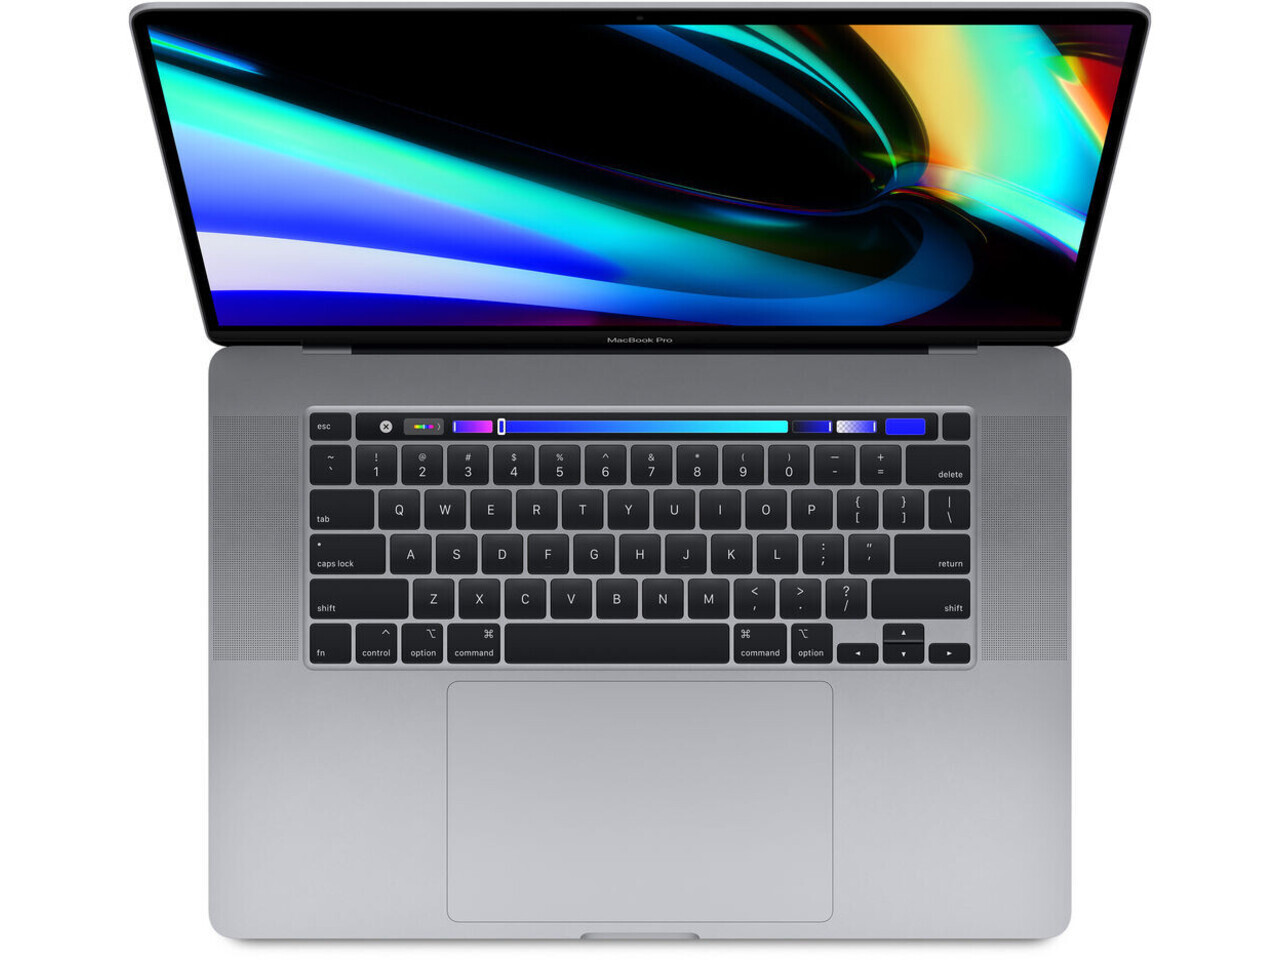 macbook pro 16 inch touch bar 2019 space gray